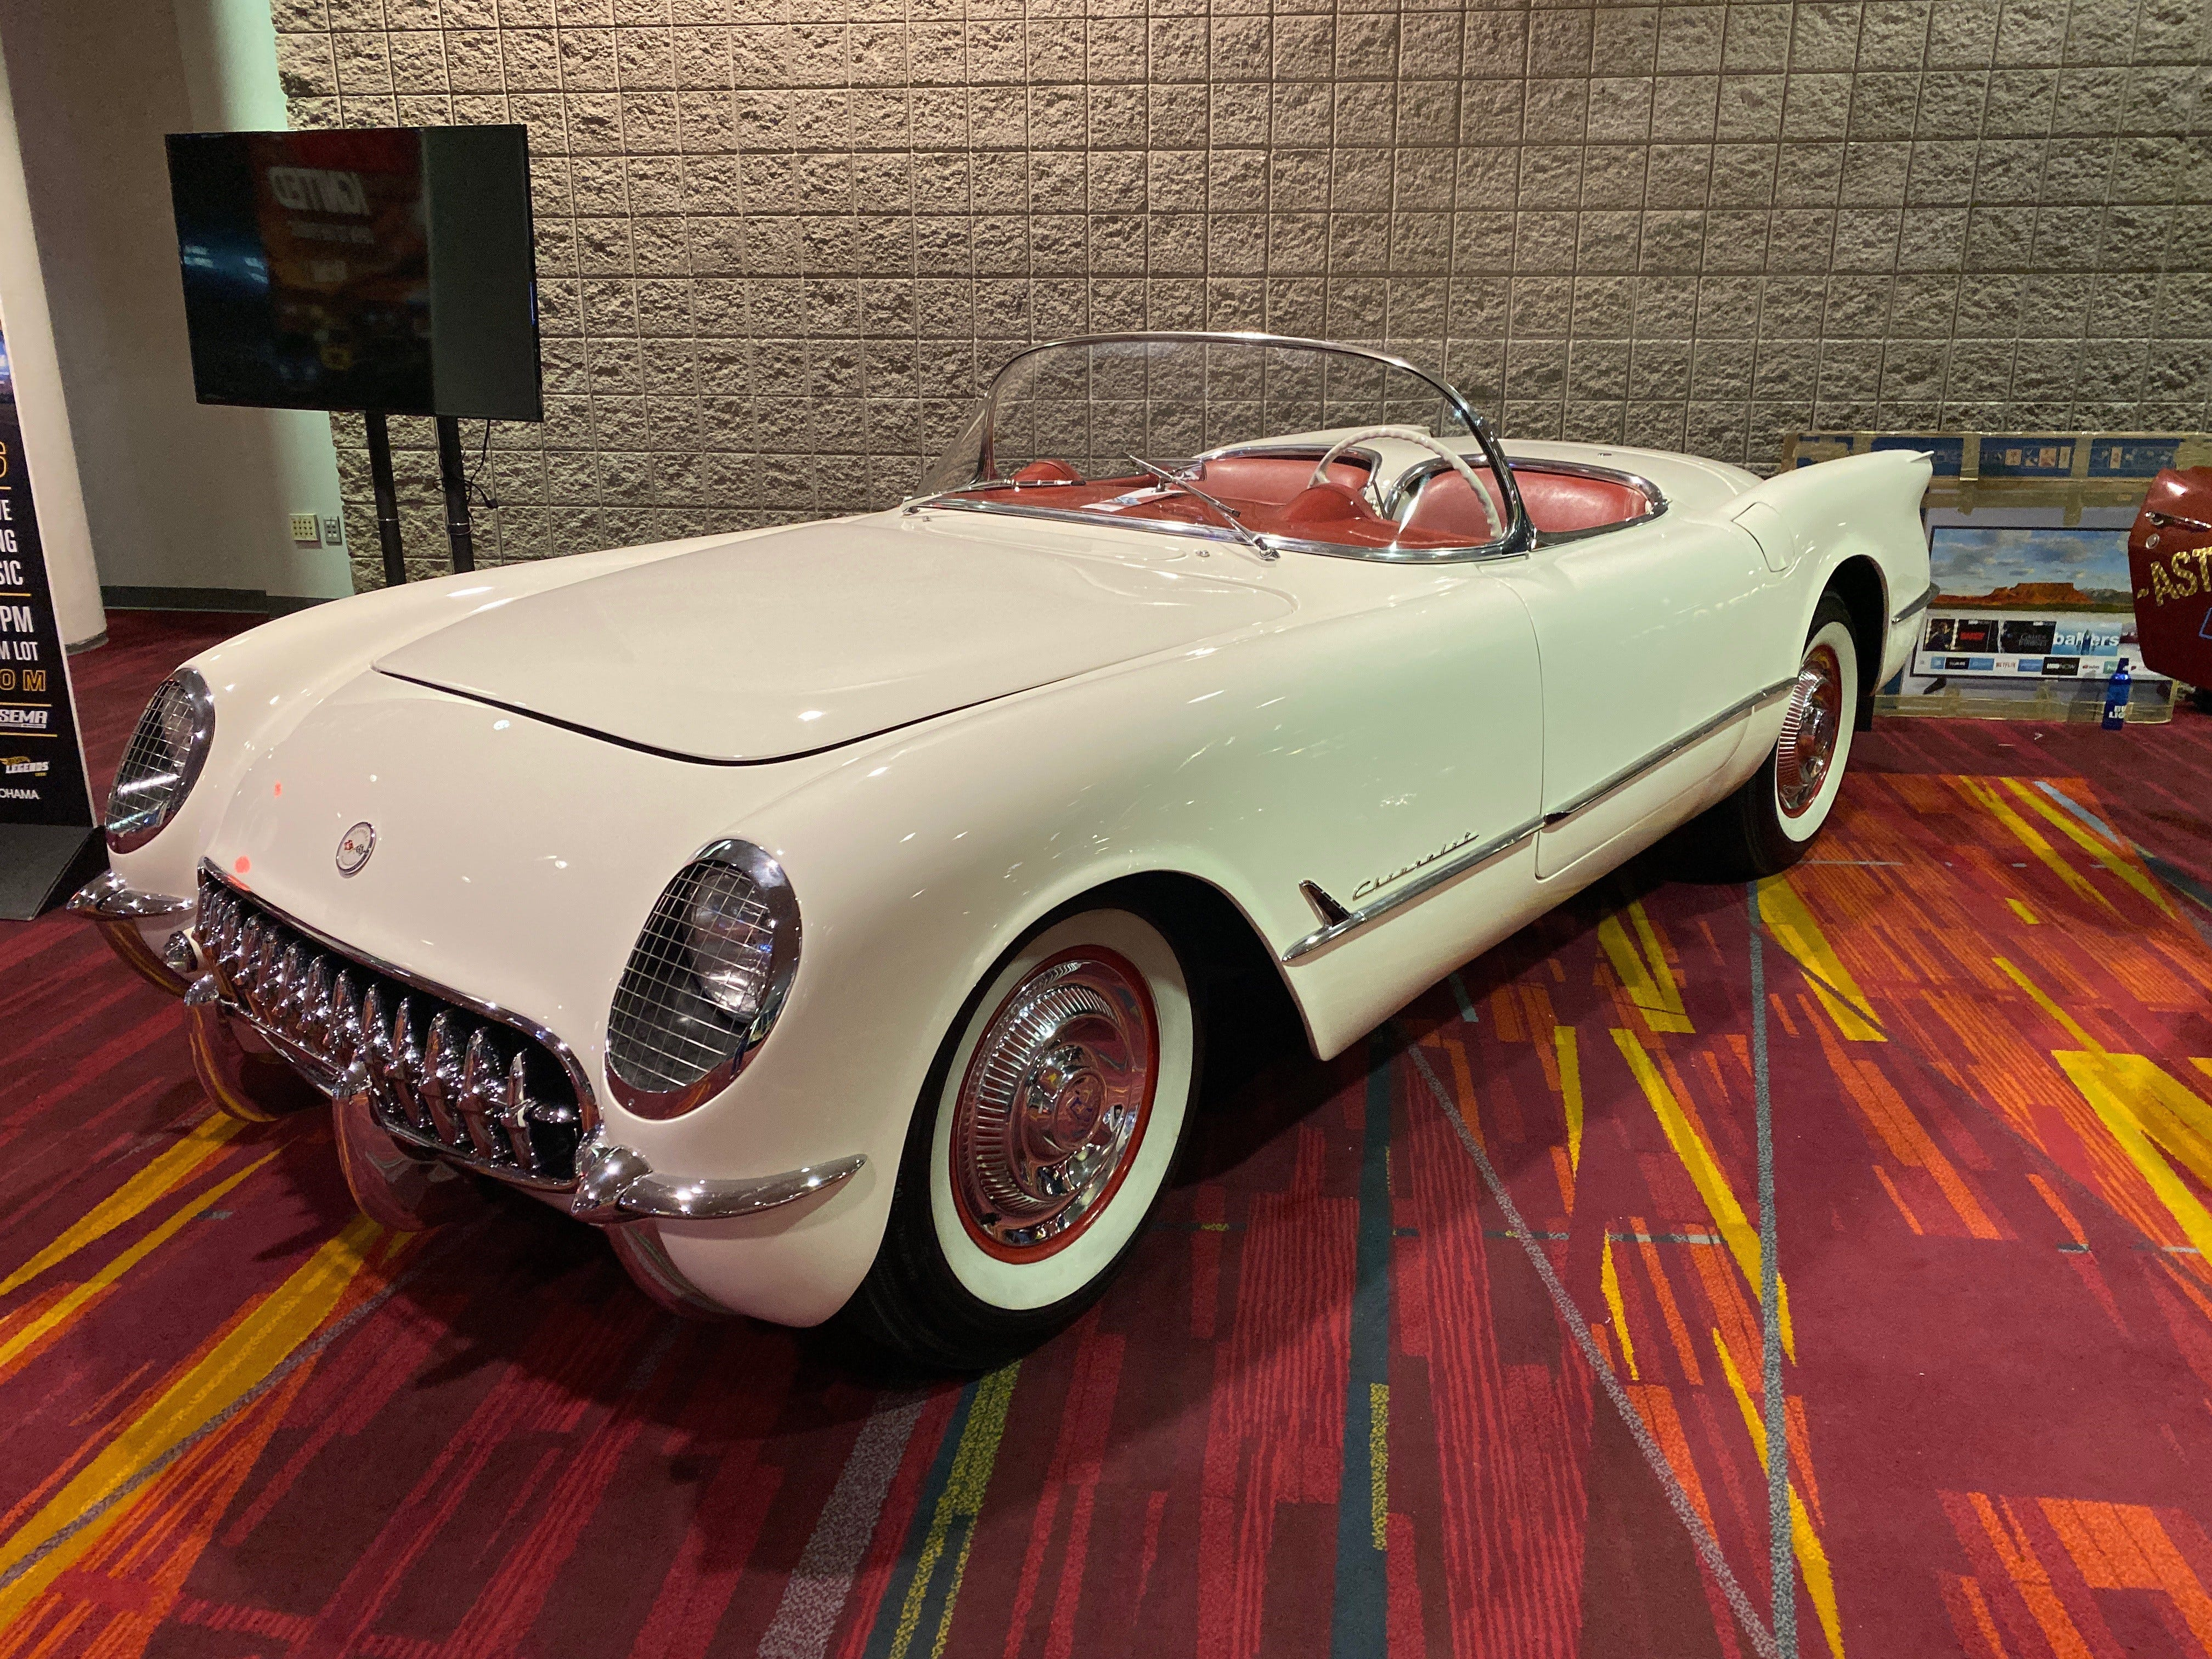 The 'lost Corvettes' are revealed: Forgotten for decades, rare Corvette collection to be given away